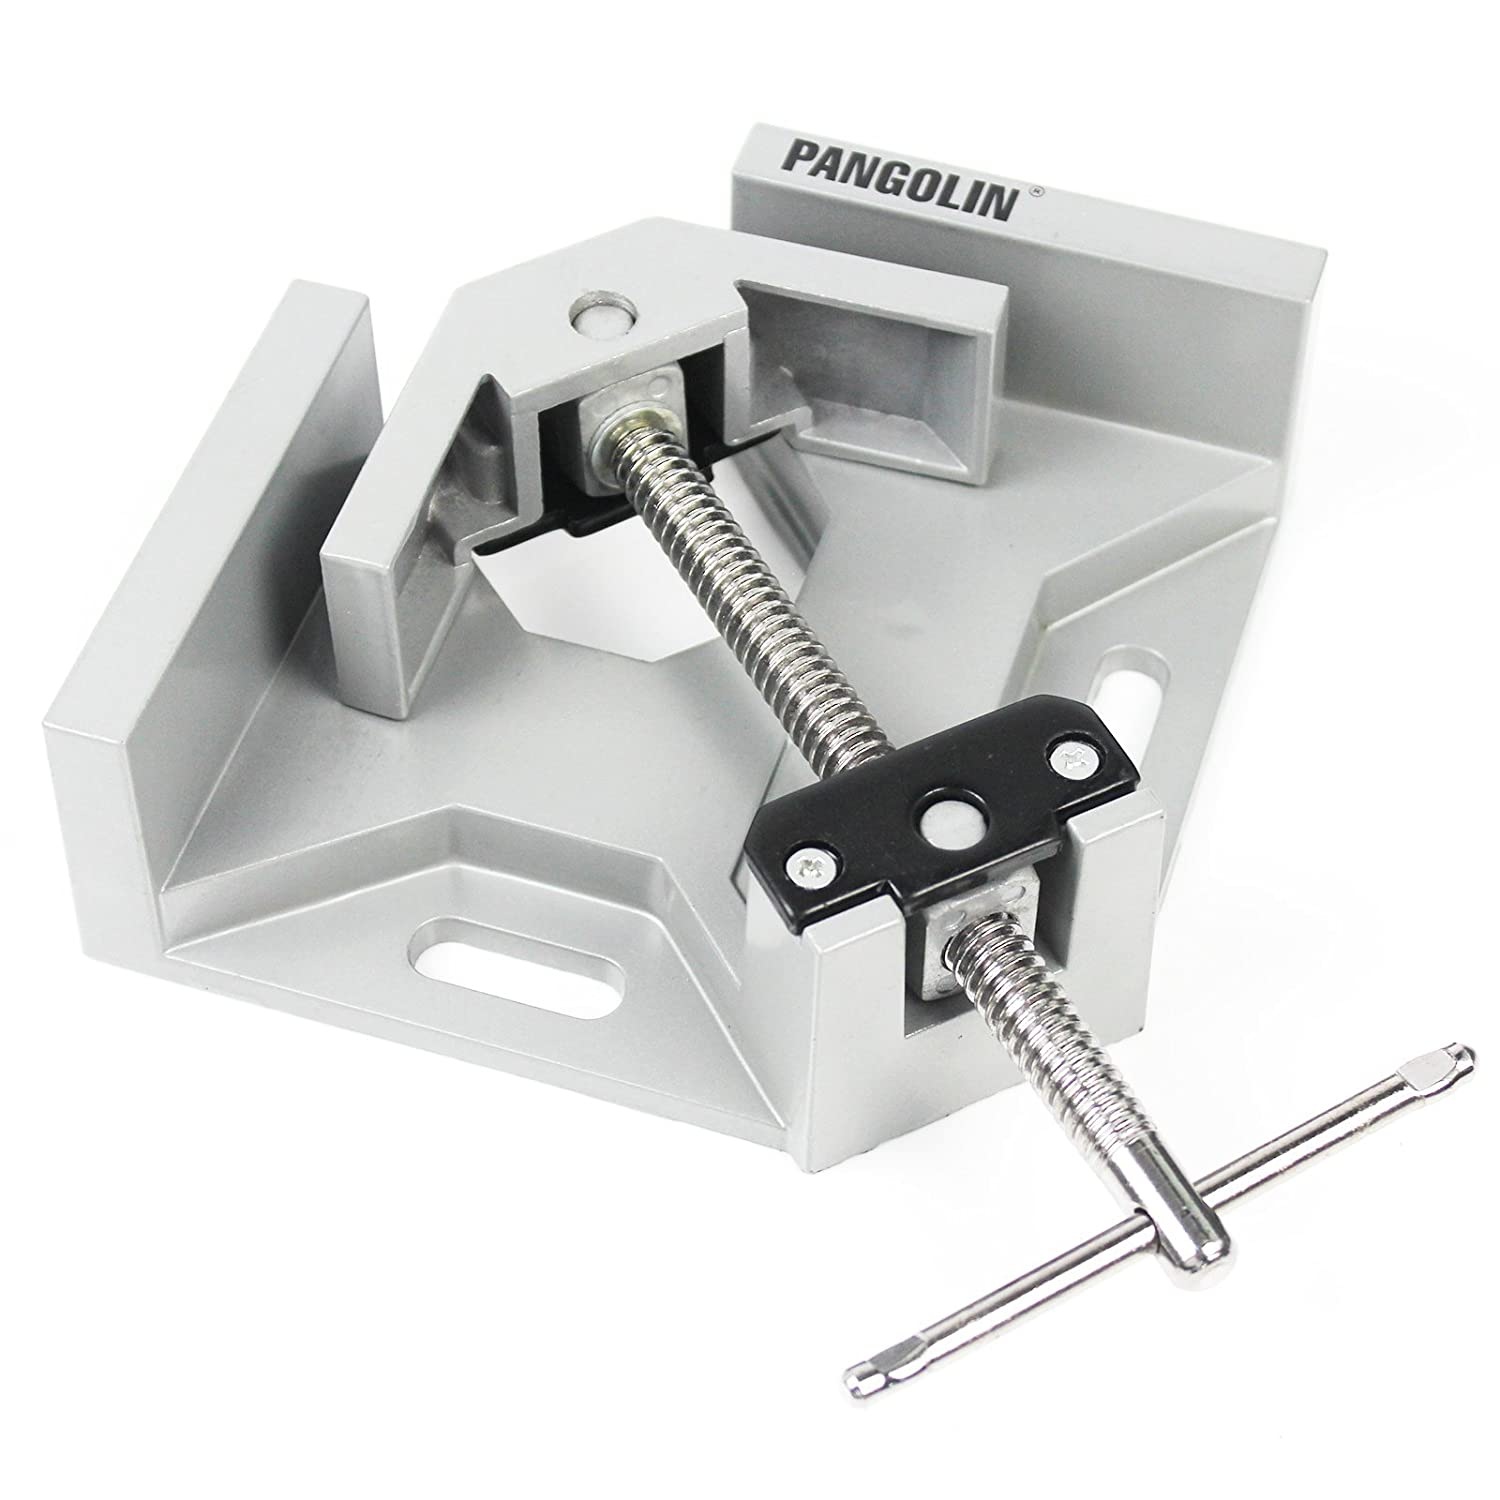 Corner Clamp Holders, PANGOLIN 90 Degree Quick Release Aluminum Corner Clamp with Adjustable Swing Jaw Ideal for Woodworking Vise,Photo Frame,and Mental Welding.